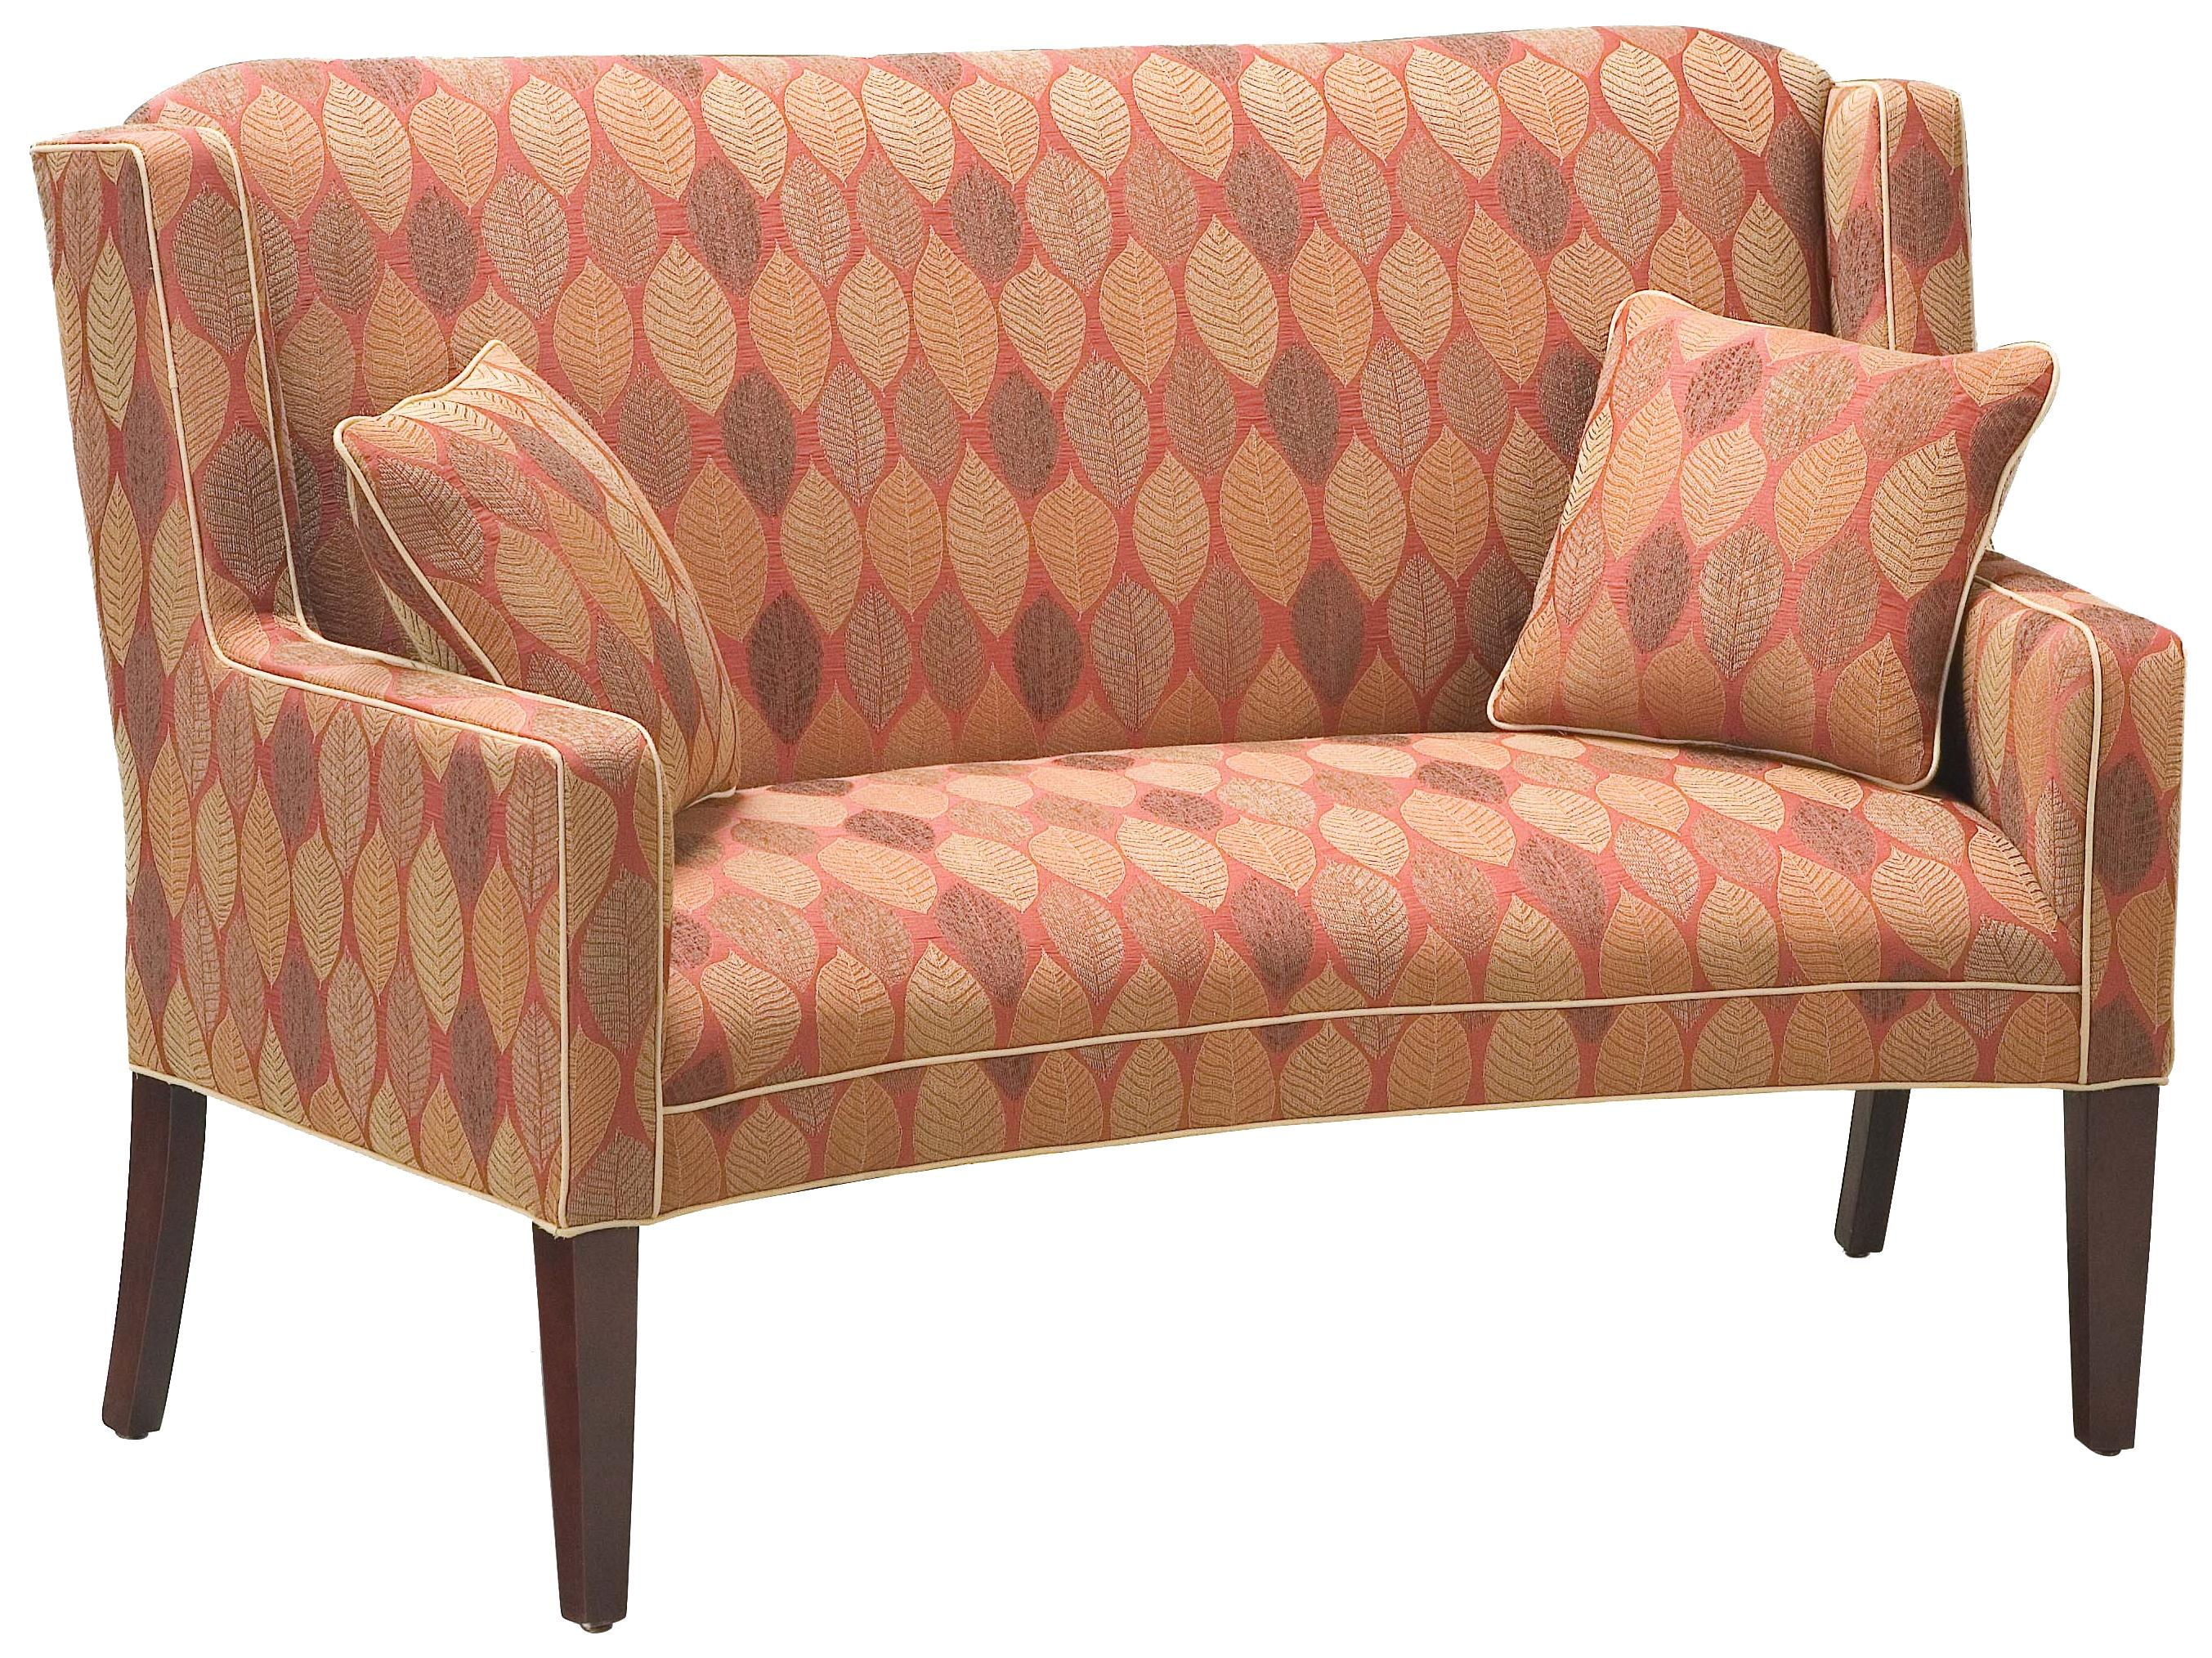 Fairfield Sofa Accents Curved Settee   Item Number: 5796 40